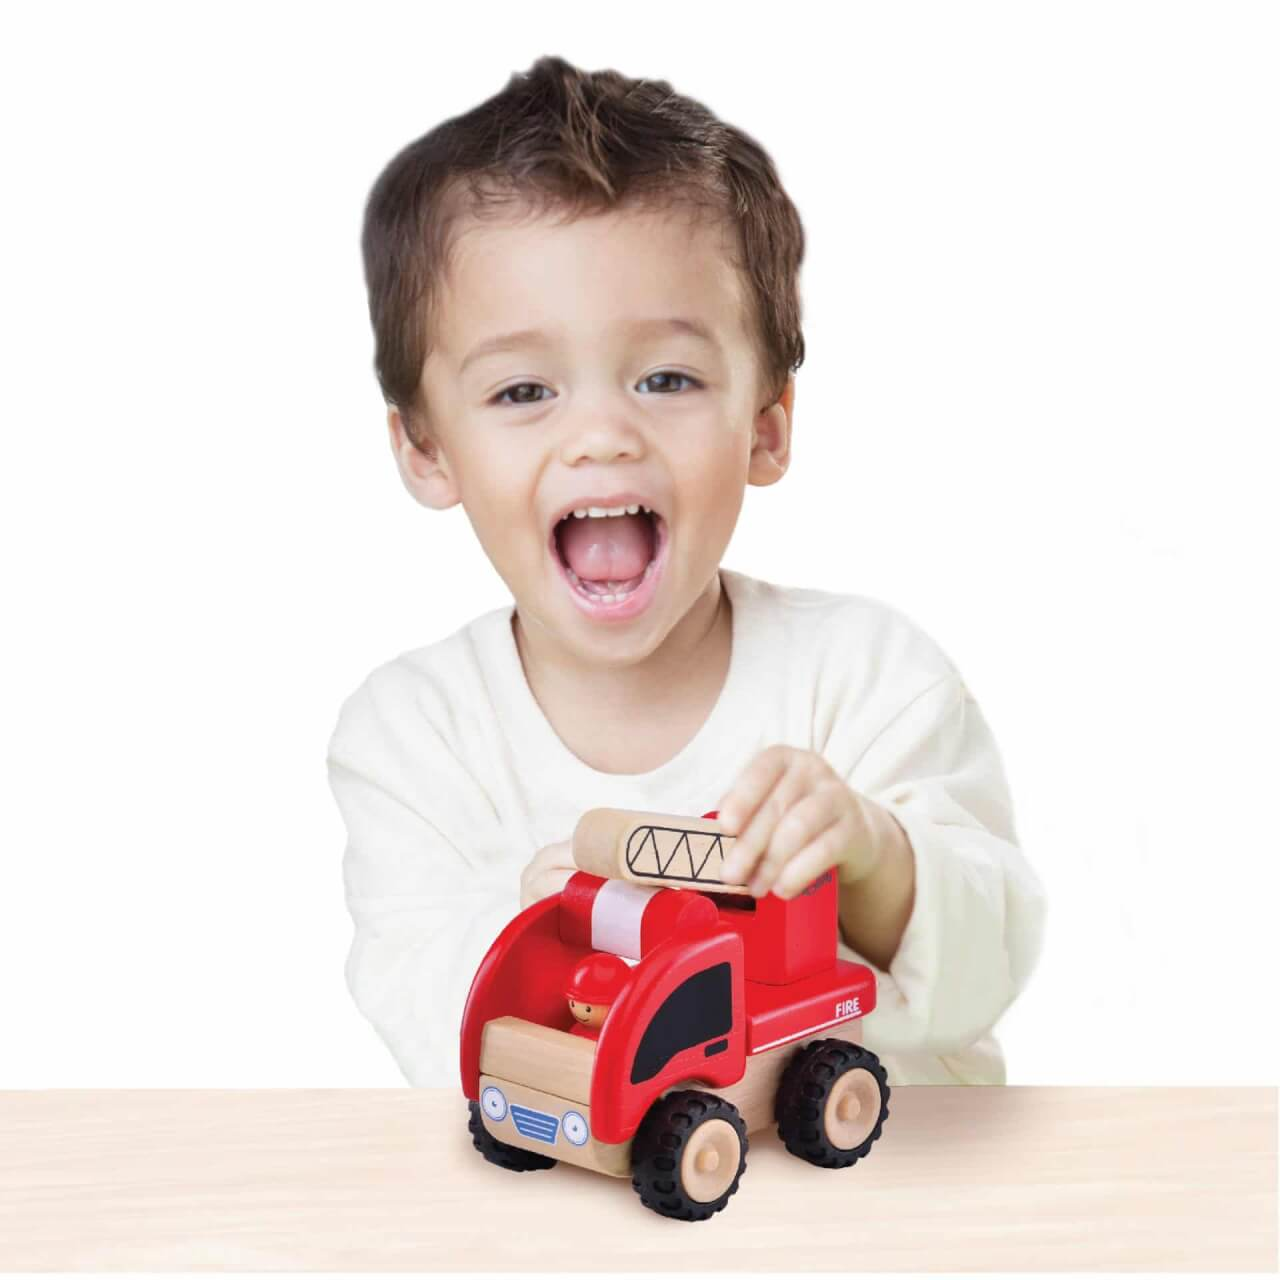 5-inch wooden fire truck for imaginative play